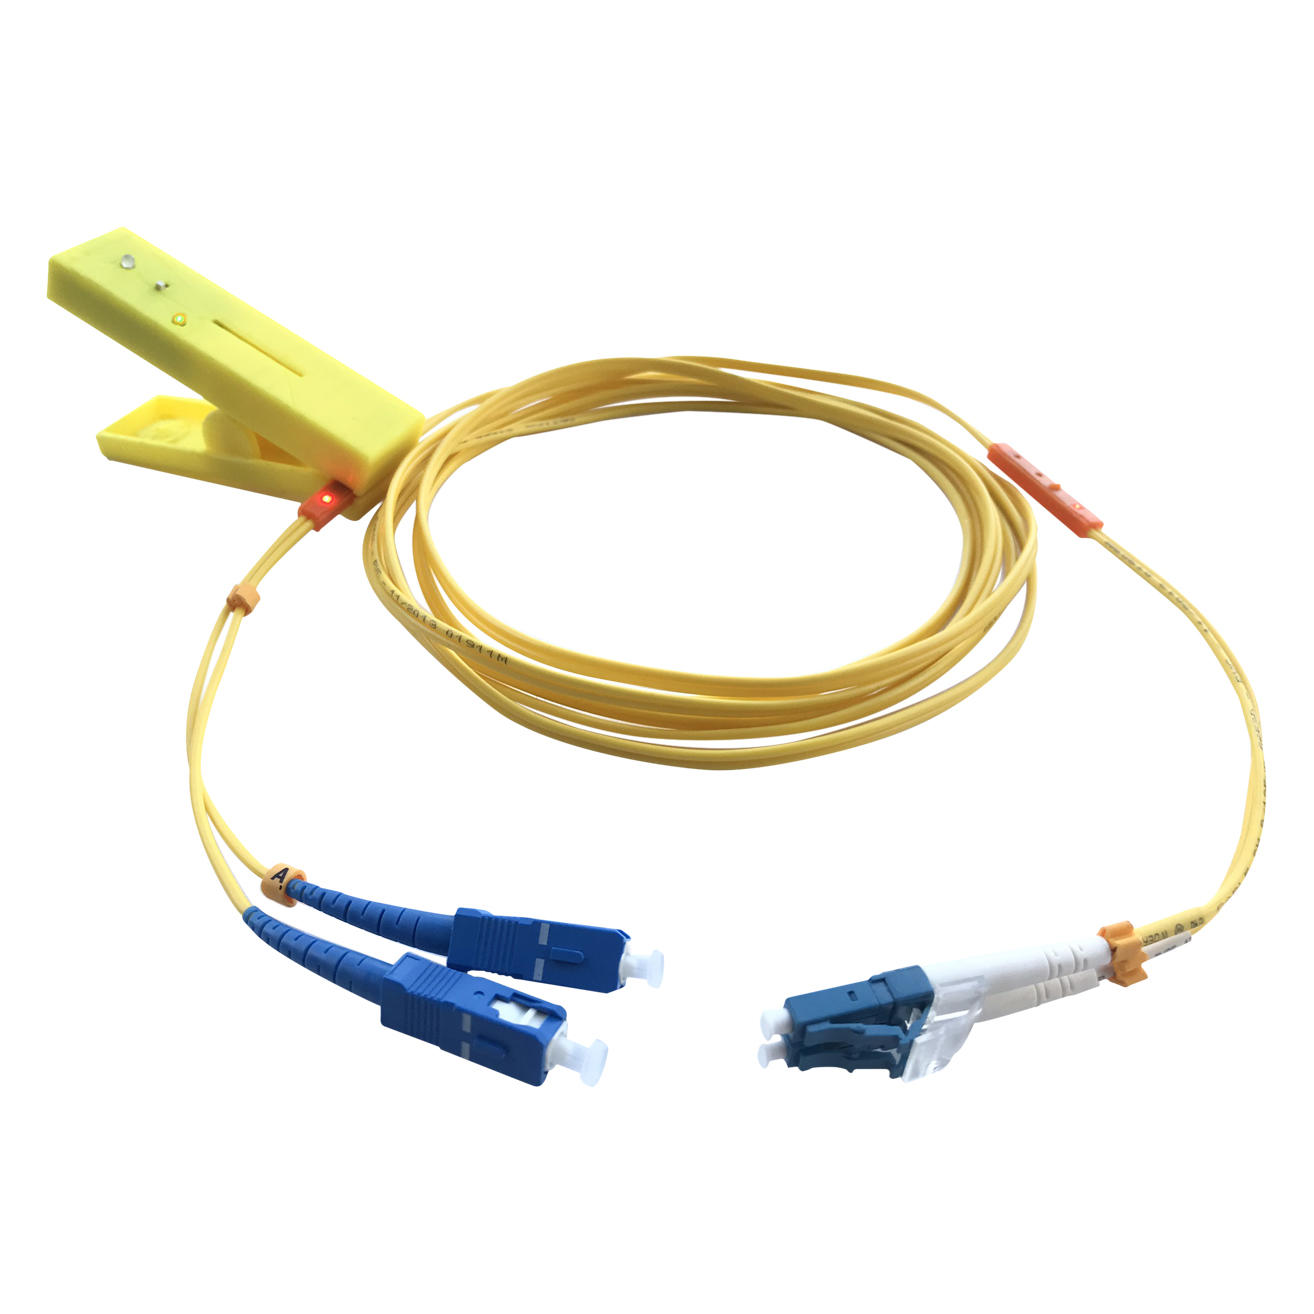 LED Tracing Fiber Patch Cord